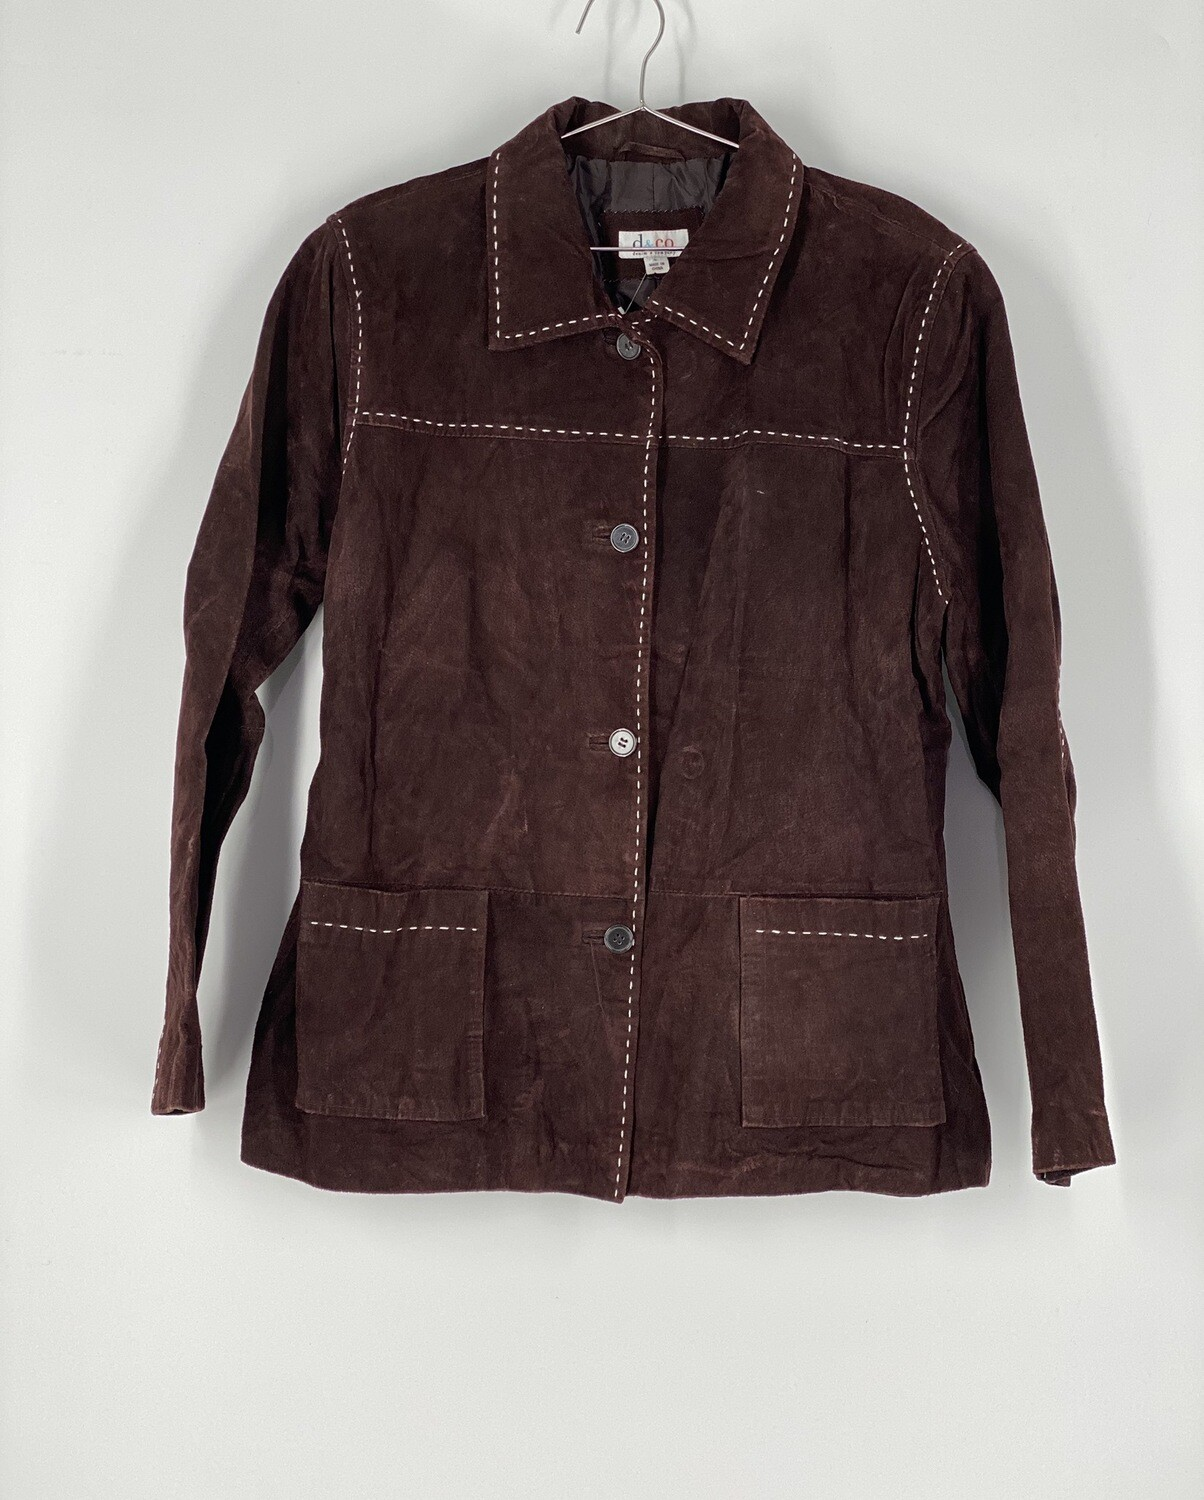 D&Co. Brown Leather Jacket Size L